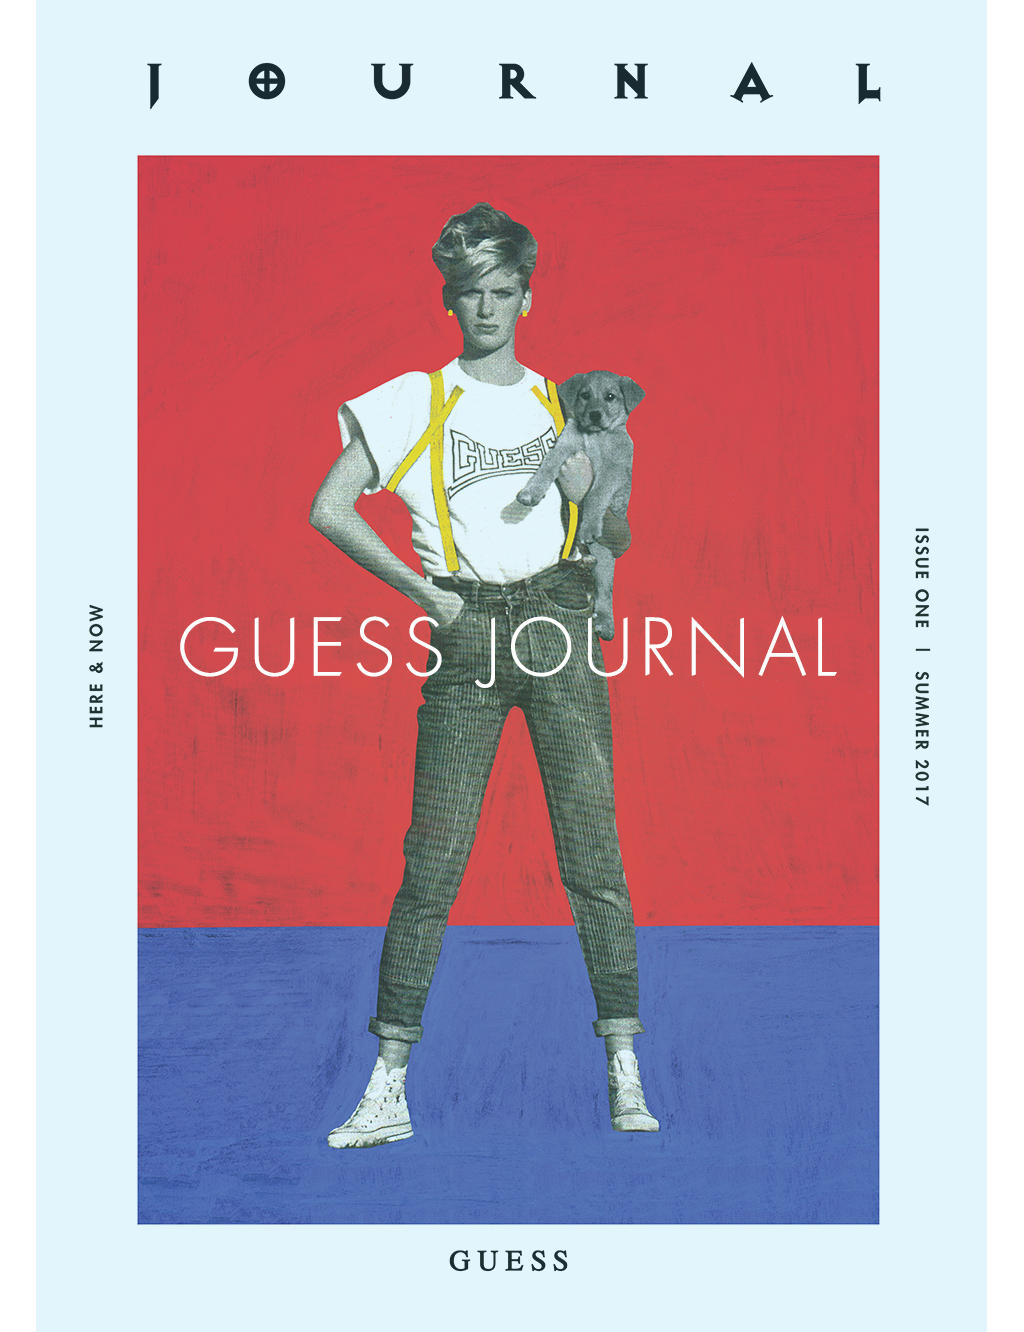 GUESS Journal Issue One